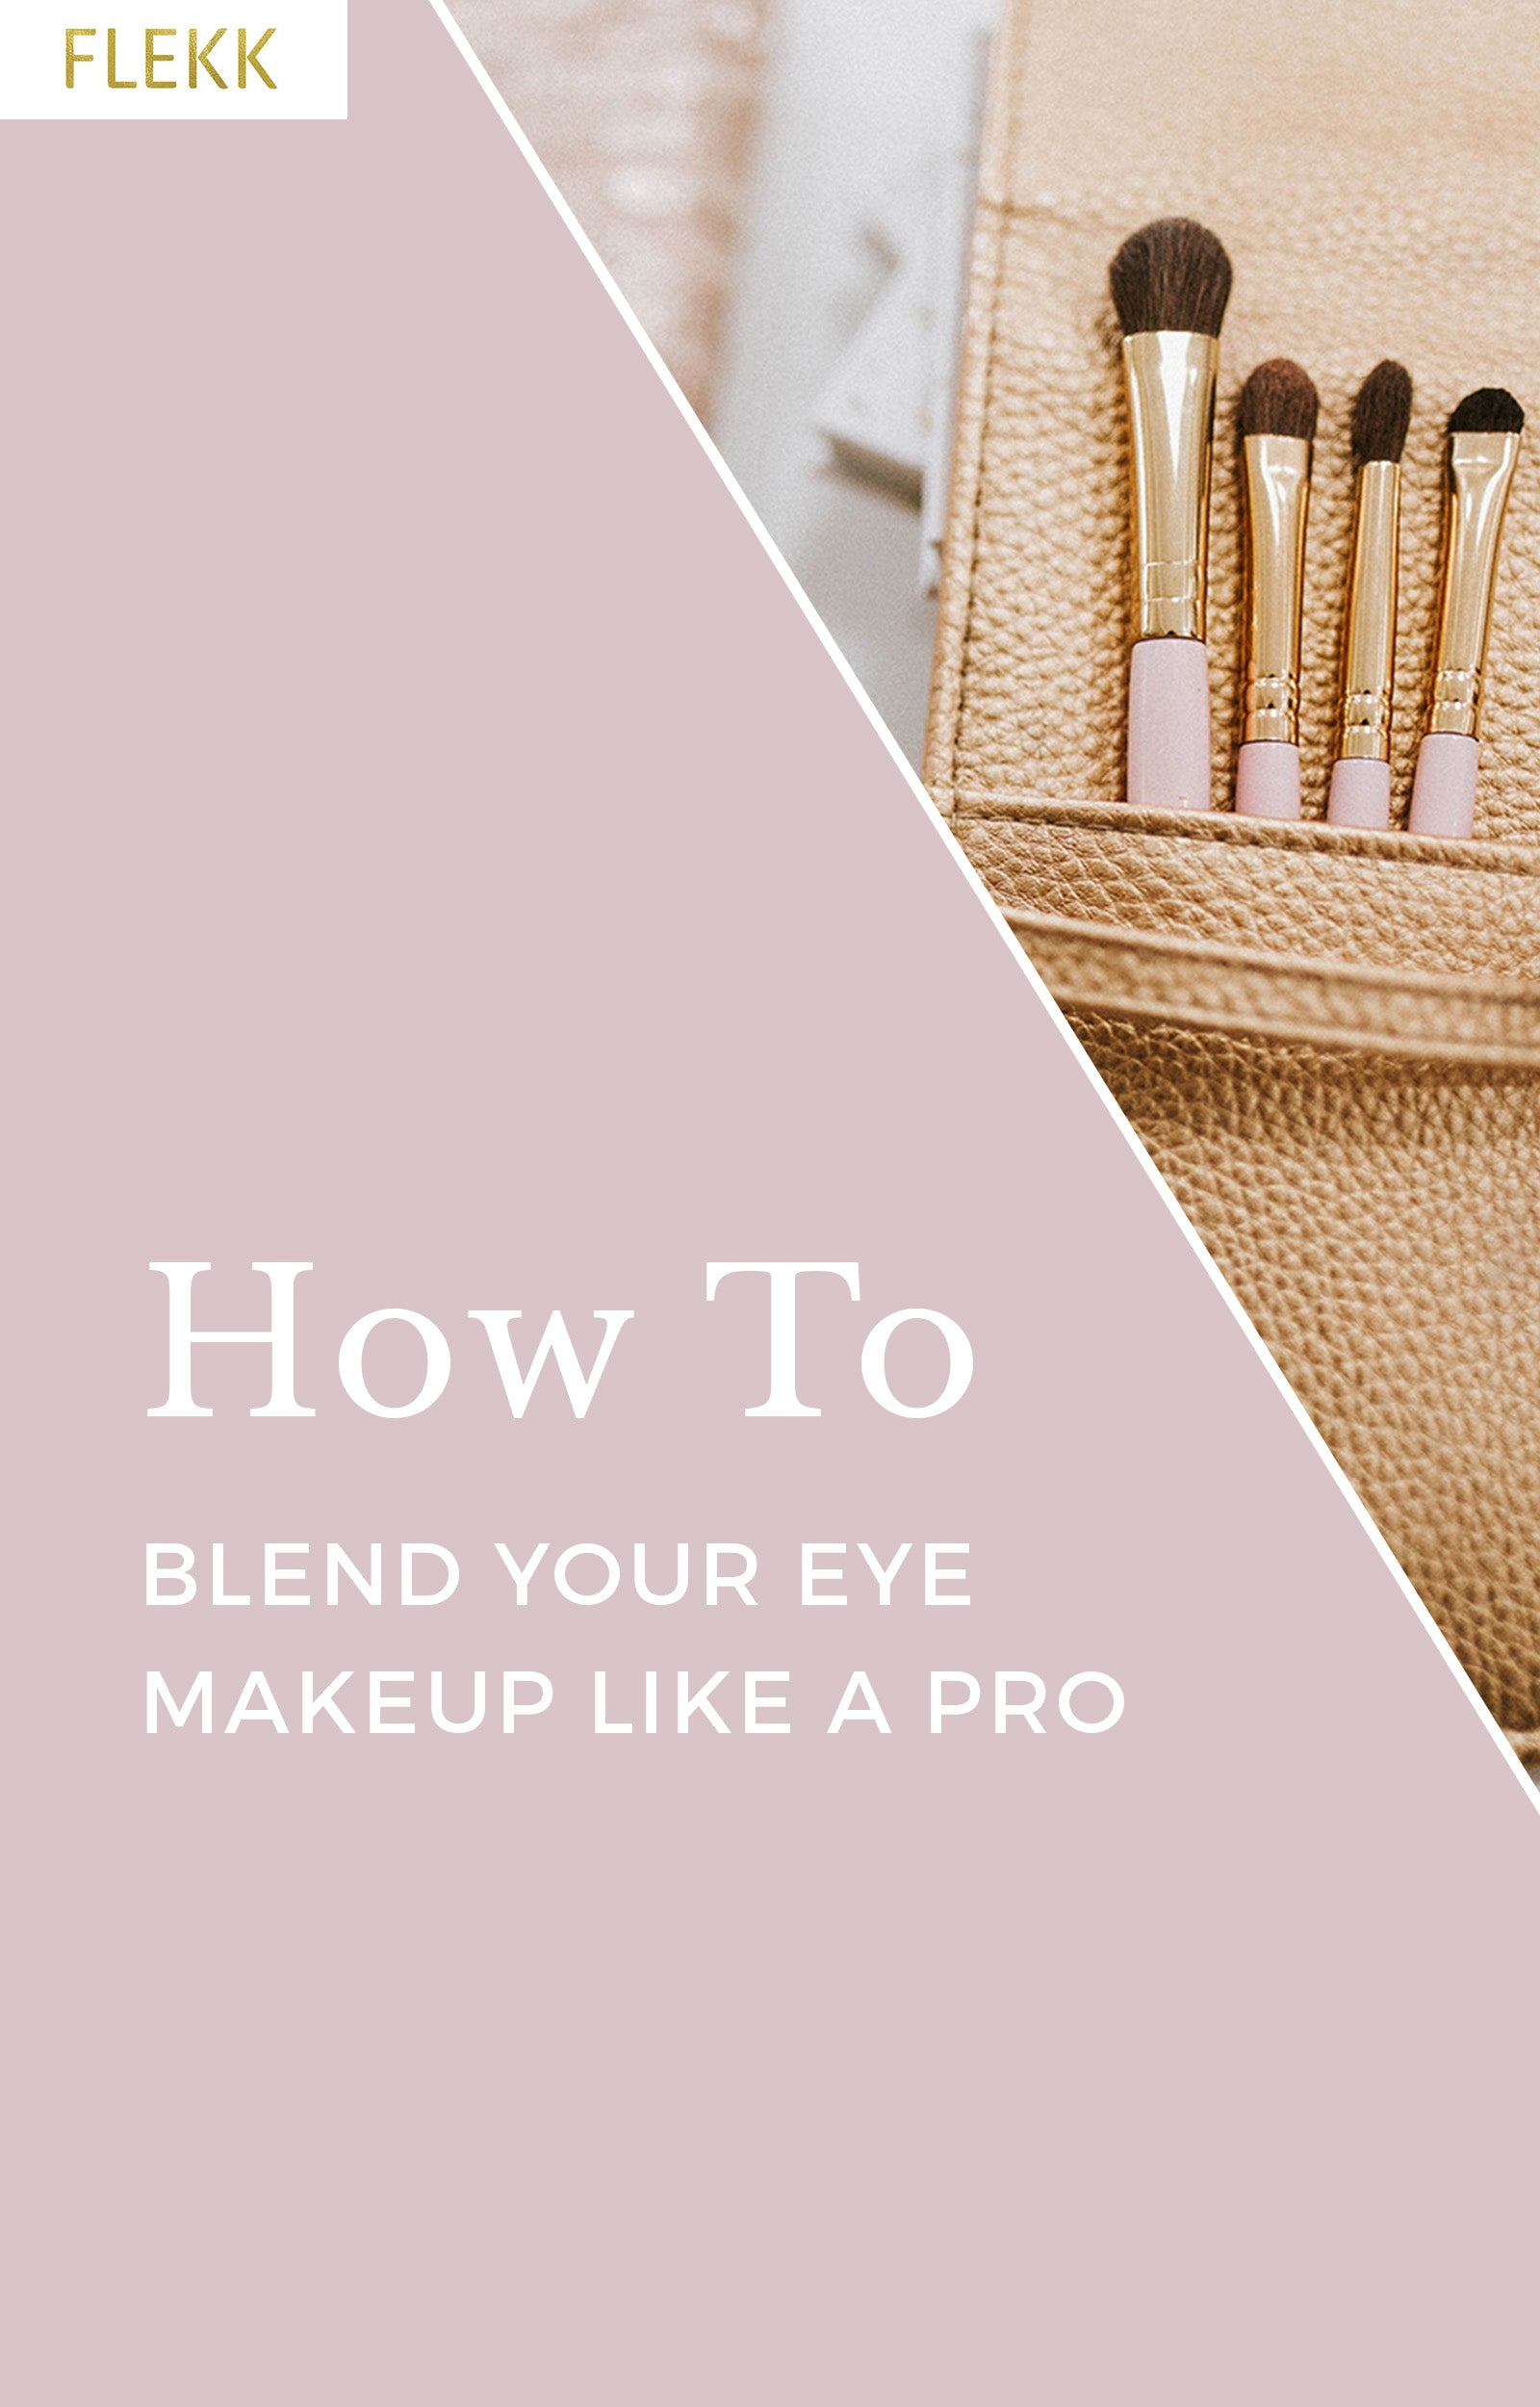 How to blend your eye makeup like a pro–exclusive eye shadow application tips for women of all ages from celebrity makeup artist Lindsey Bouffard. #flekkcosmetics #makeupartist #celebrityeyes #eyeshadowtips #makeuptips #blending